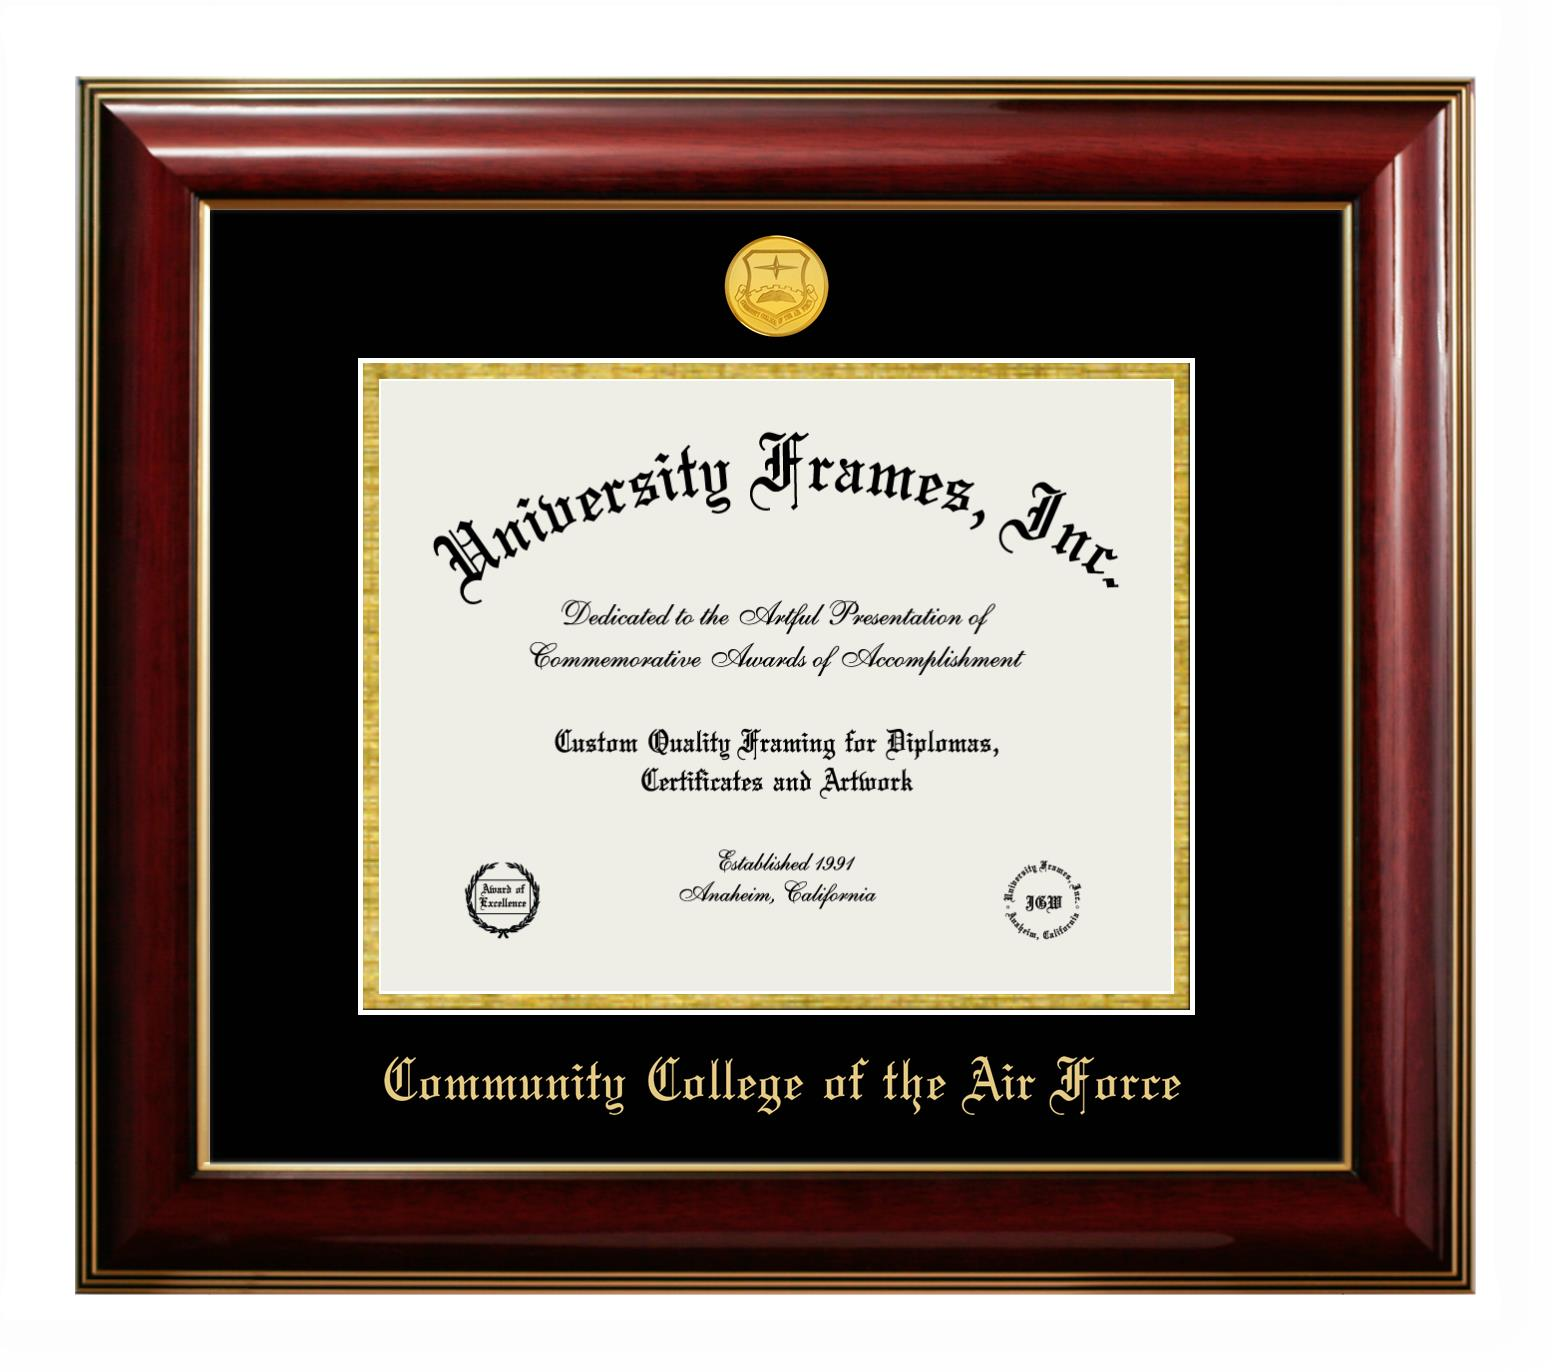 Community College Of The Air Force Diploma Frame In Classic Mahogany With Gold Trim With Black Gold Mats